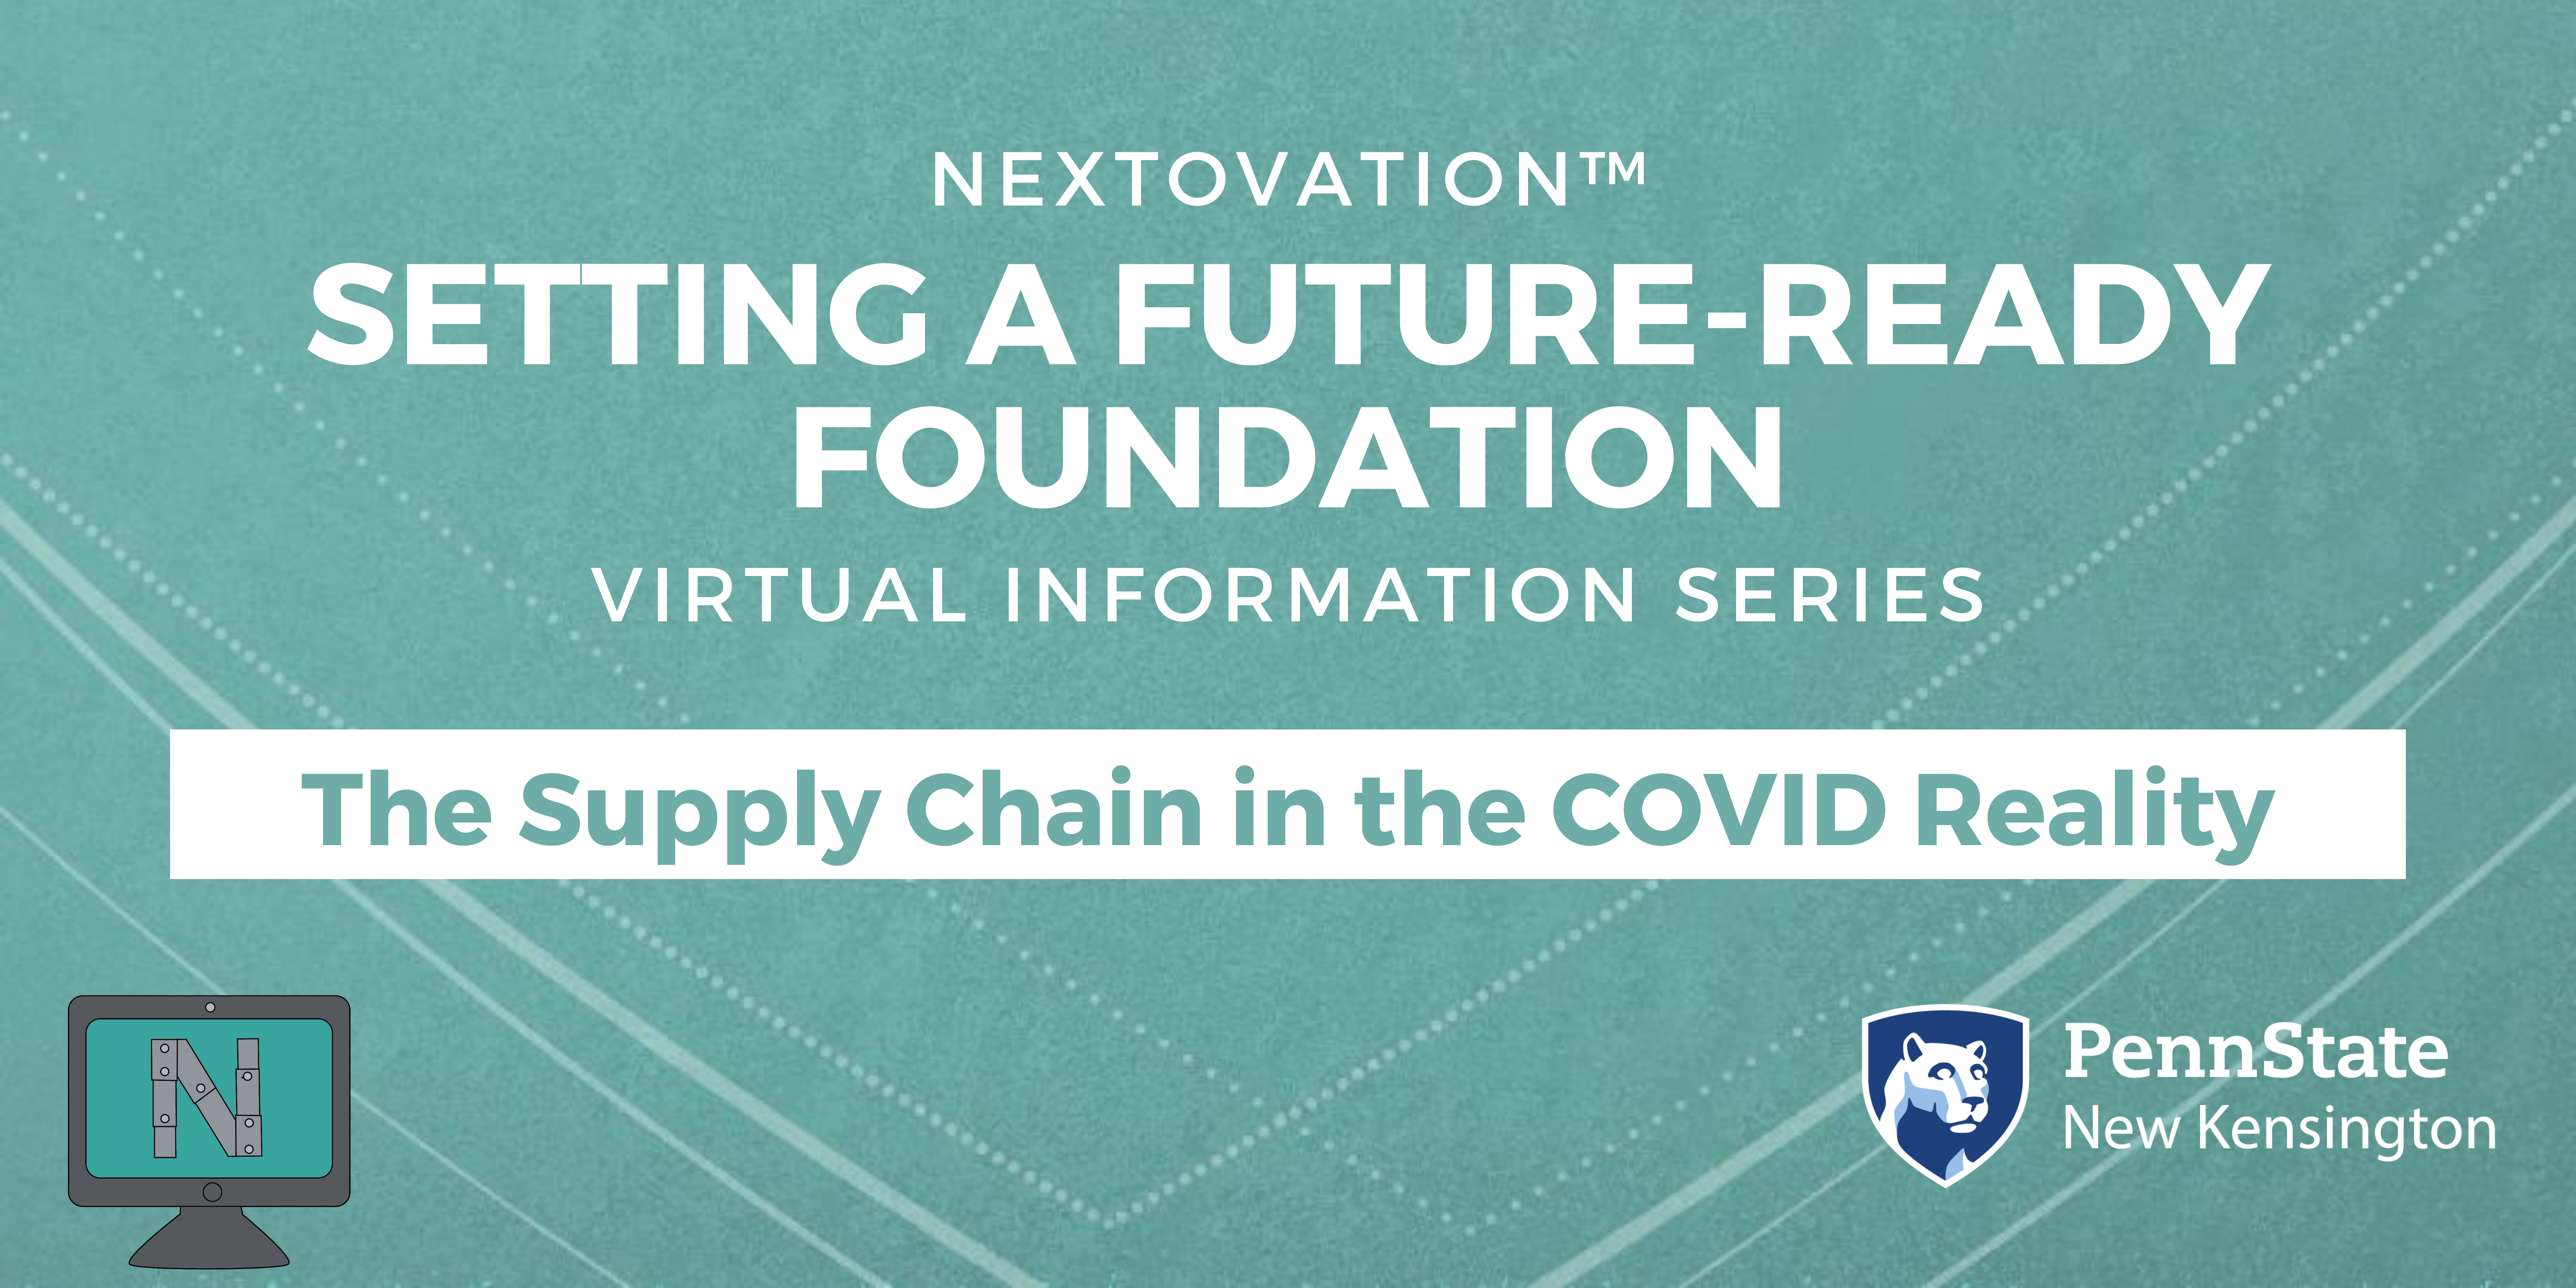 Webinar Title: Supply Chain in the COVID Reality